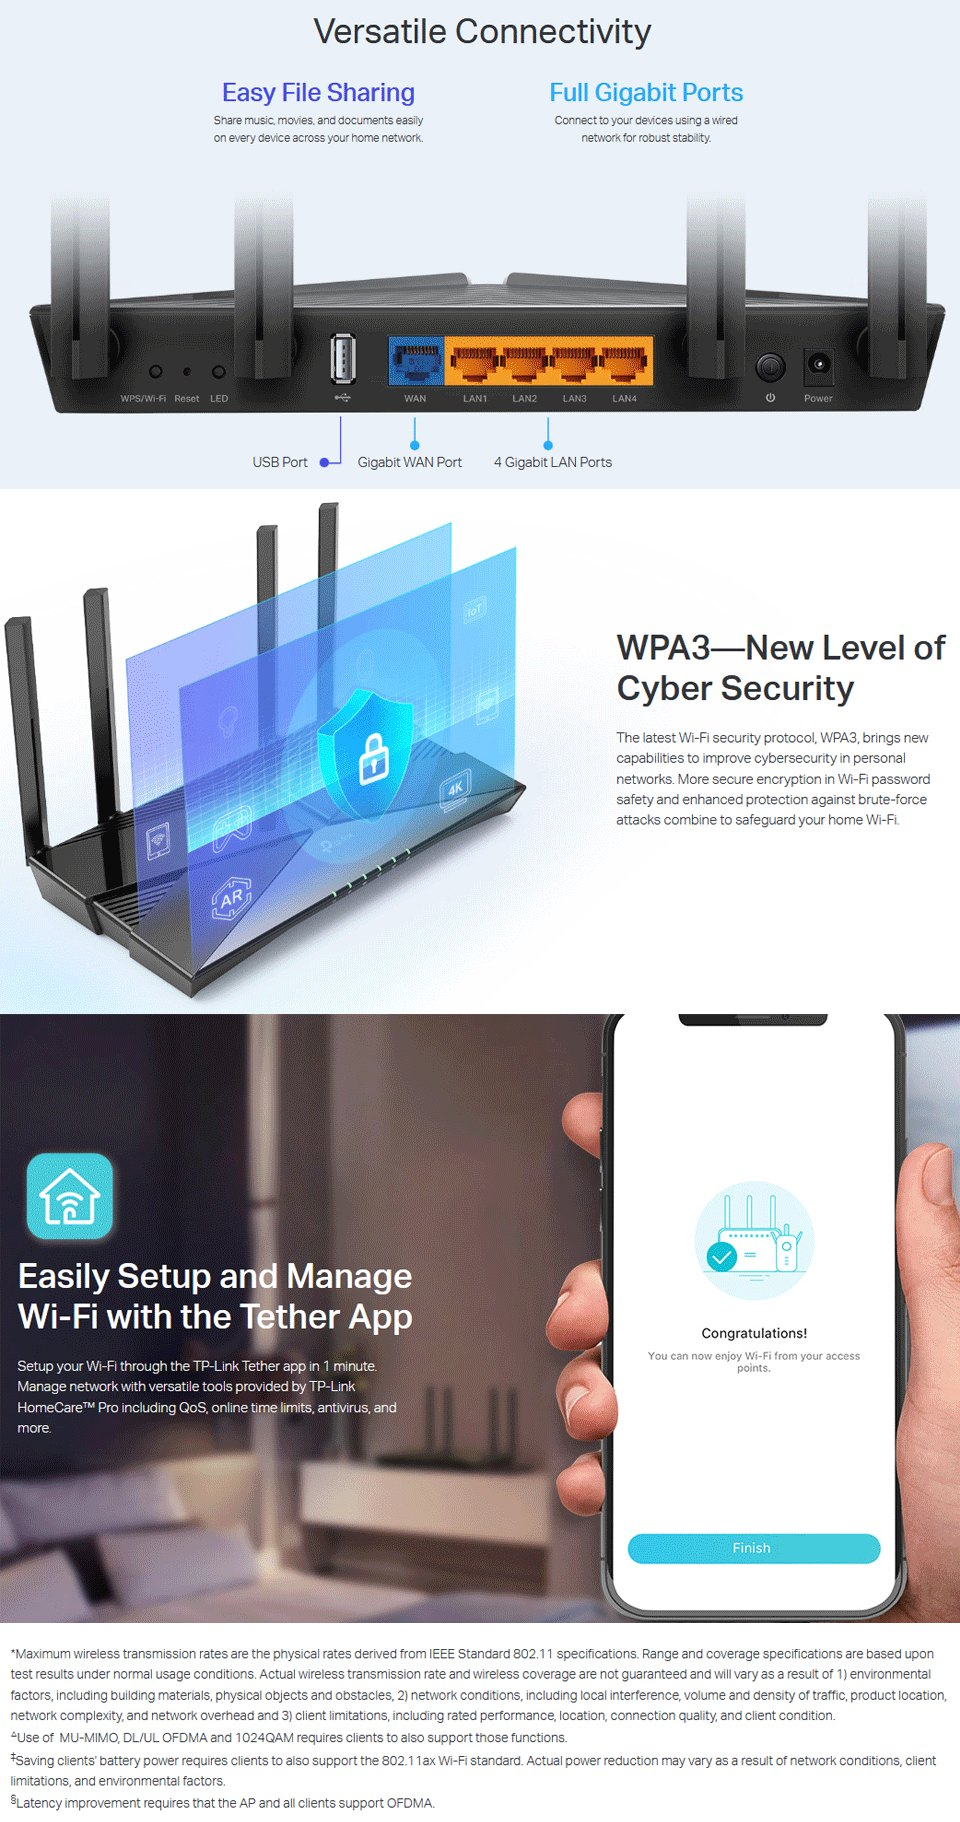 TP-Link Archer AX20 AX1800 Dual Band Wi-Fi 6 Router features 3